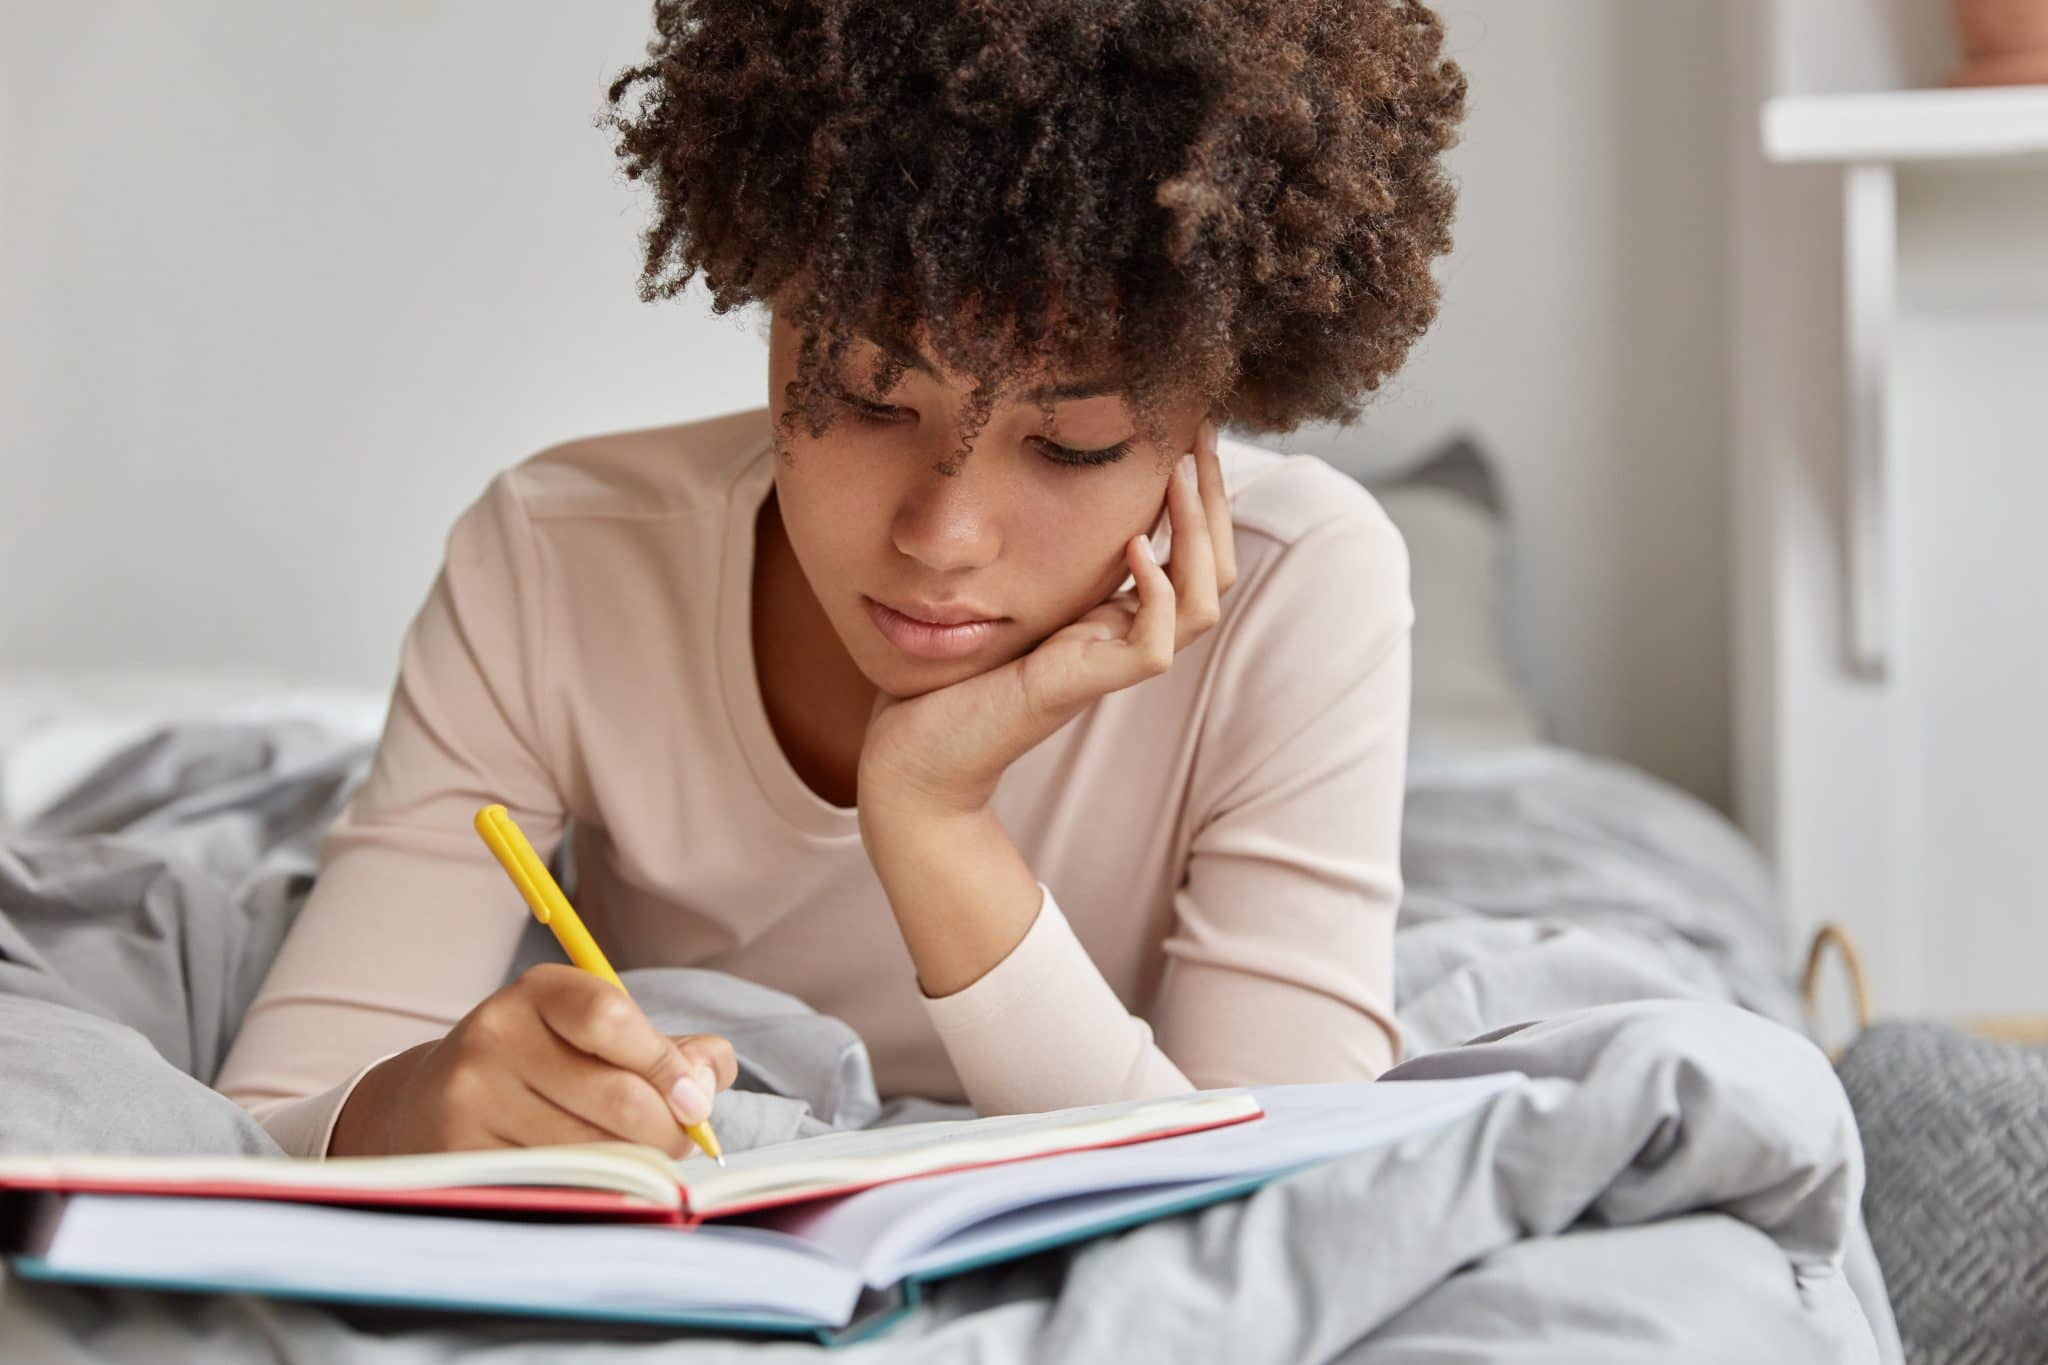 journaling in addiction recovery